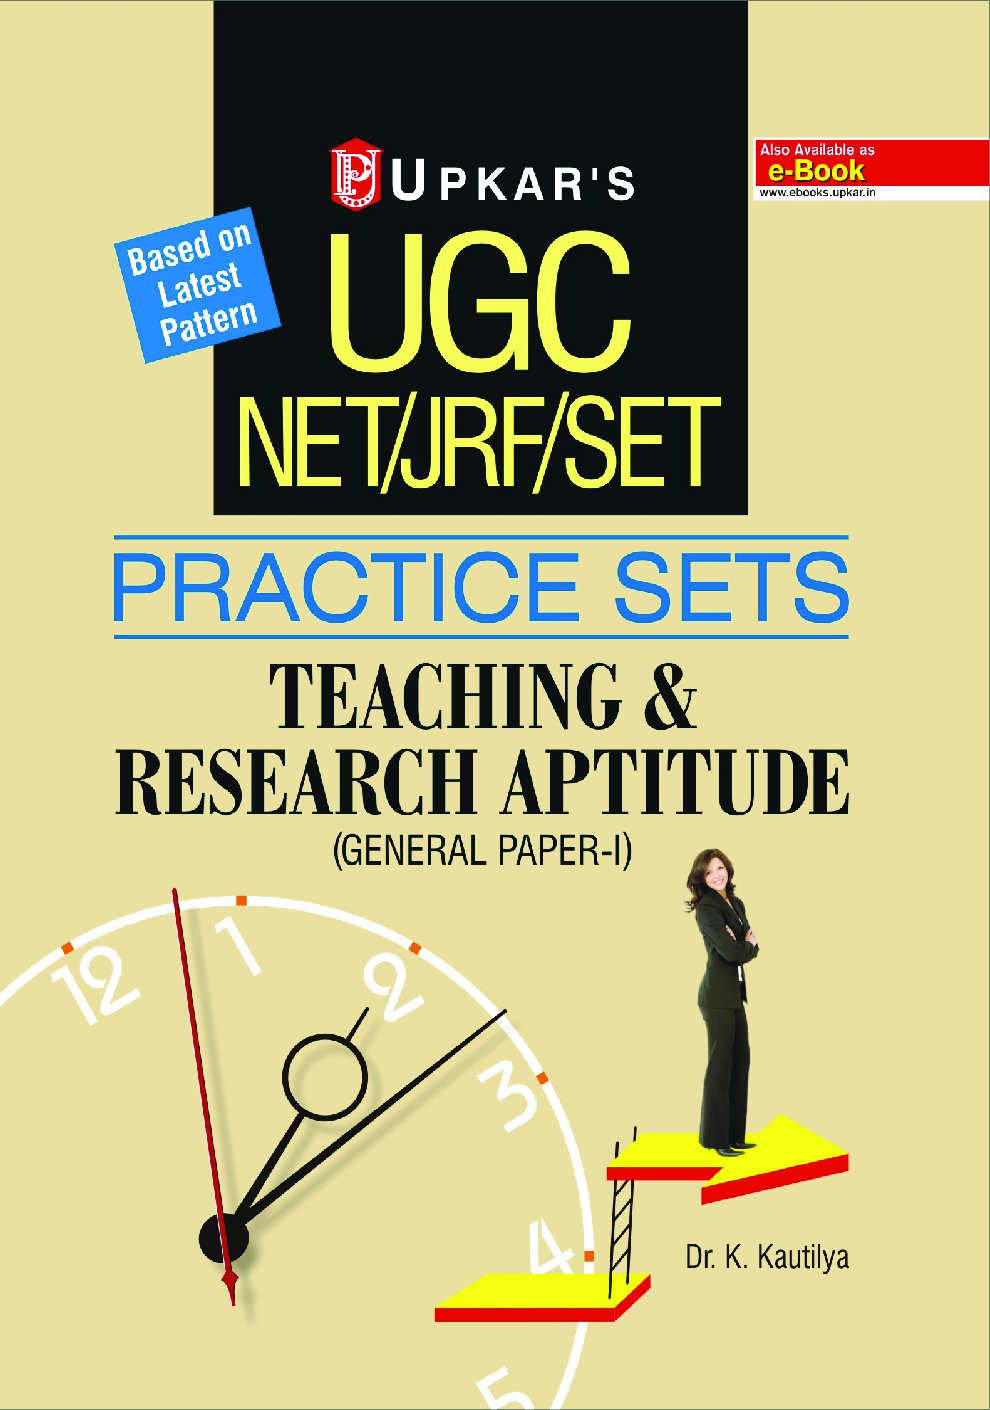 UGC NET /JRF /SET Practice Sets Teaching And Research Aptitude (General Paper-I) Revised Edition - Page 1